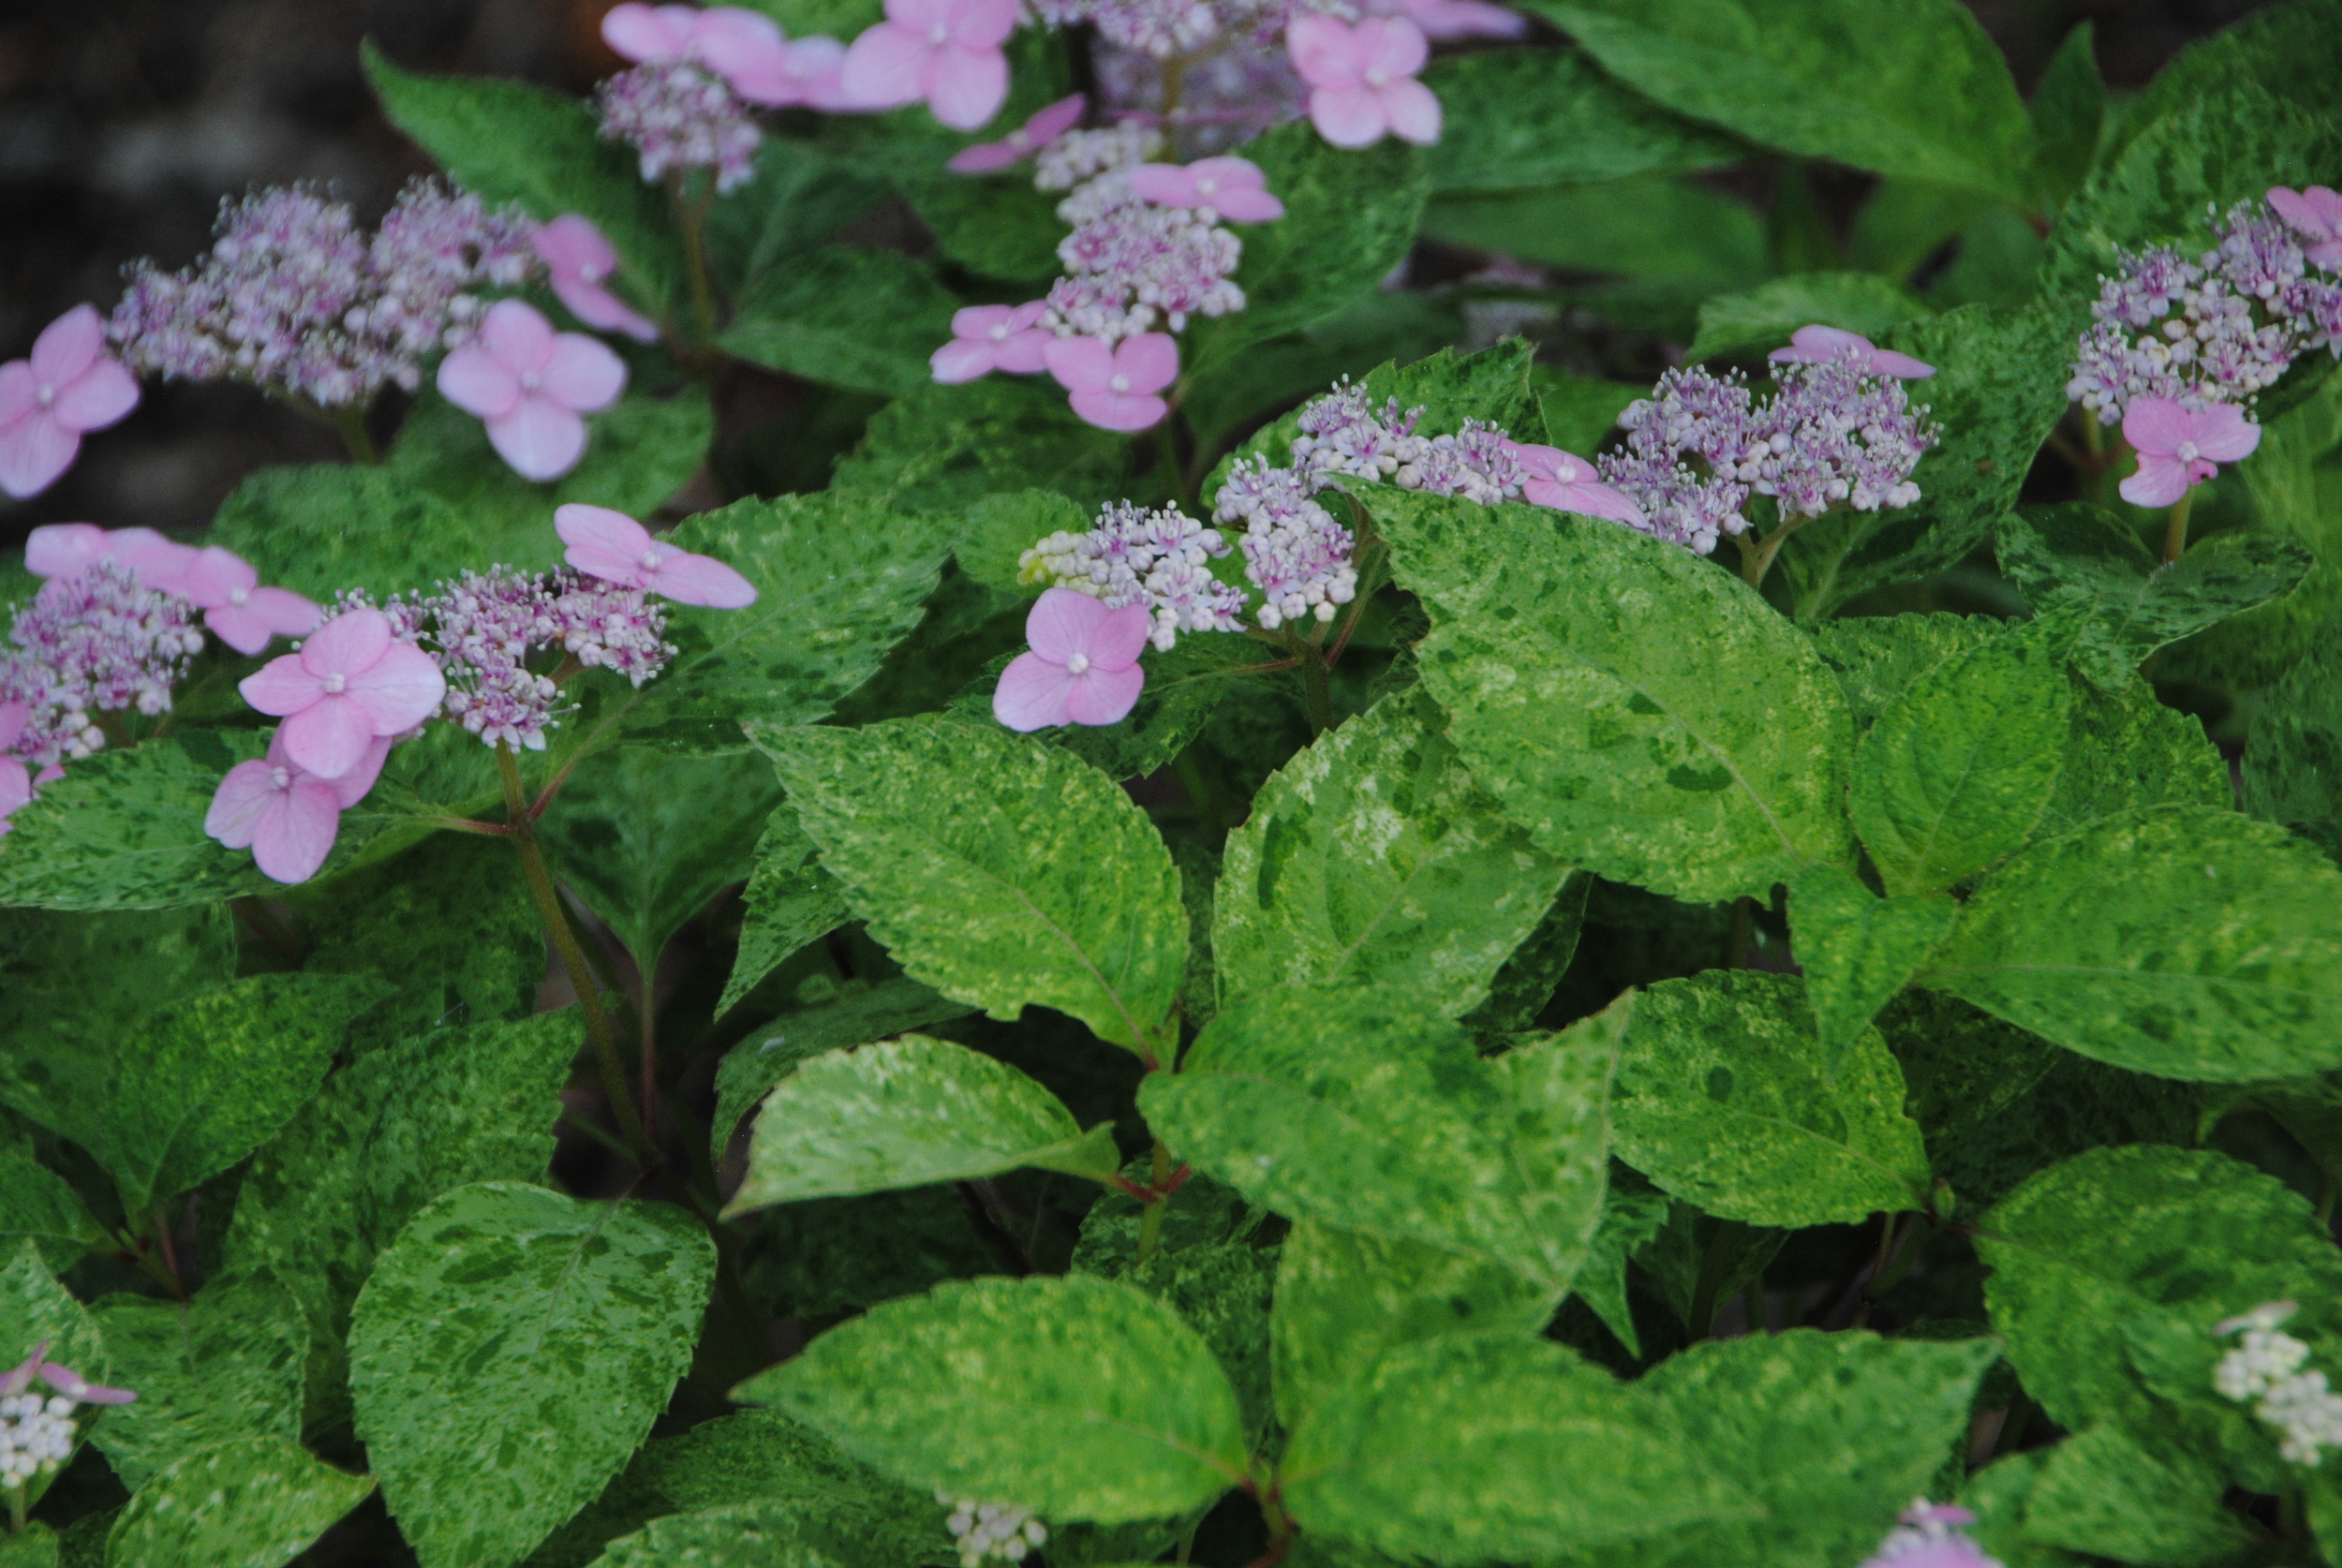 The heavily speckled variegation looks great with the soft pink flowers.